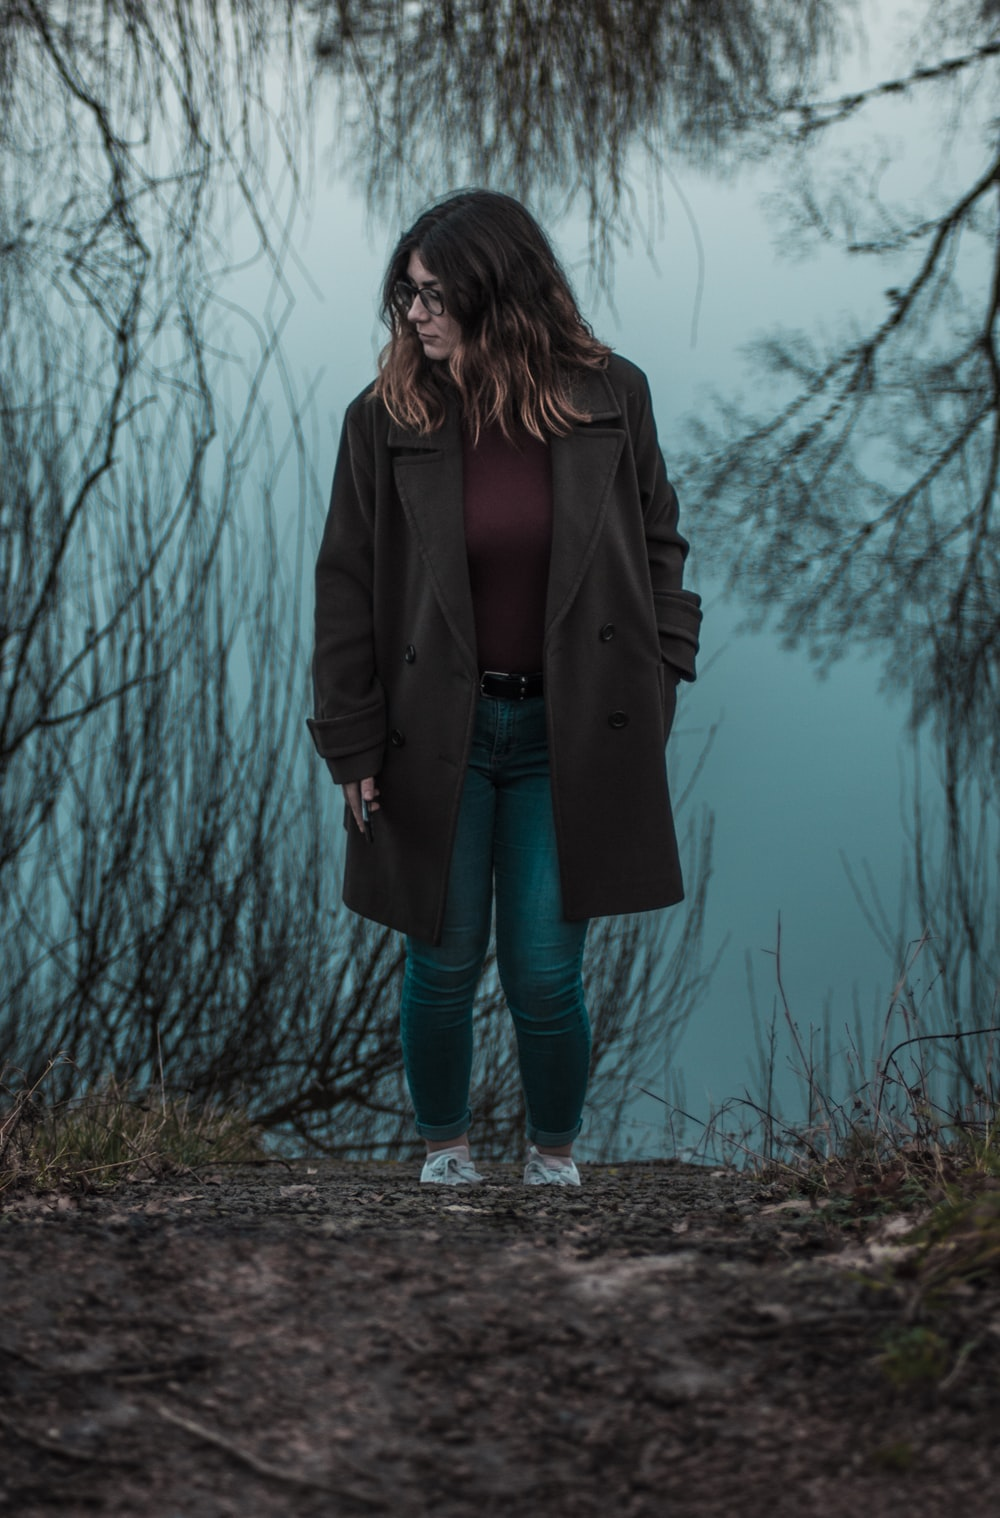 woman walking near withered plants